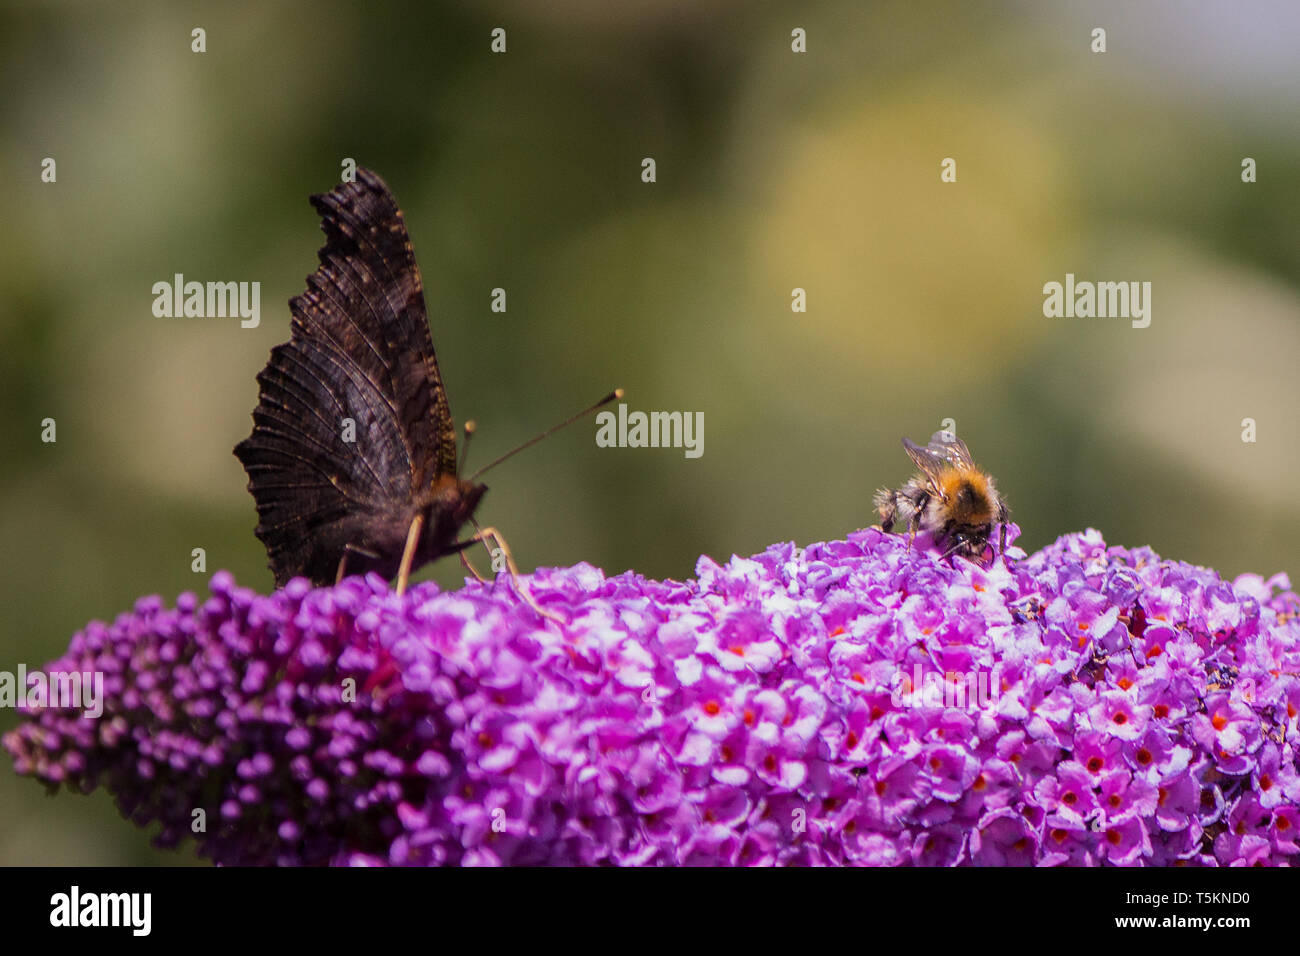 Tierische Freunde auf lila Flieder -Biene Schmetterling / animal friends on purple lilac - bee butterfly - Stock Image